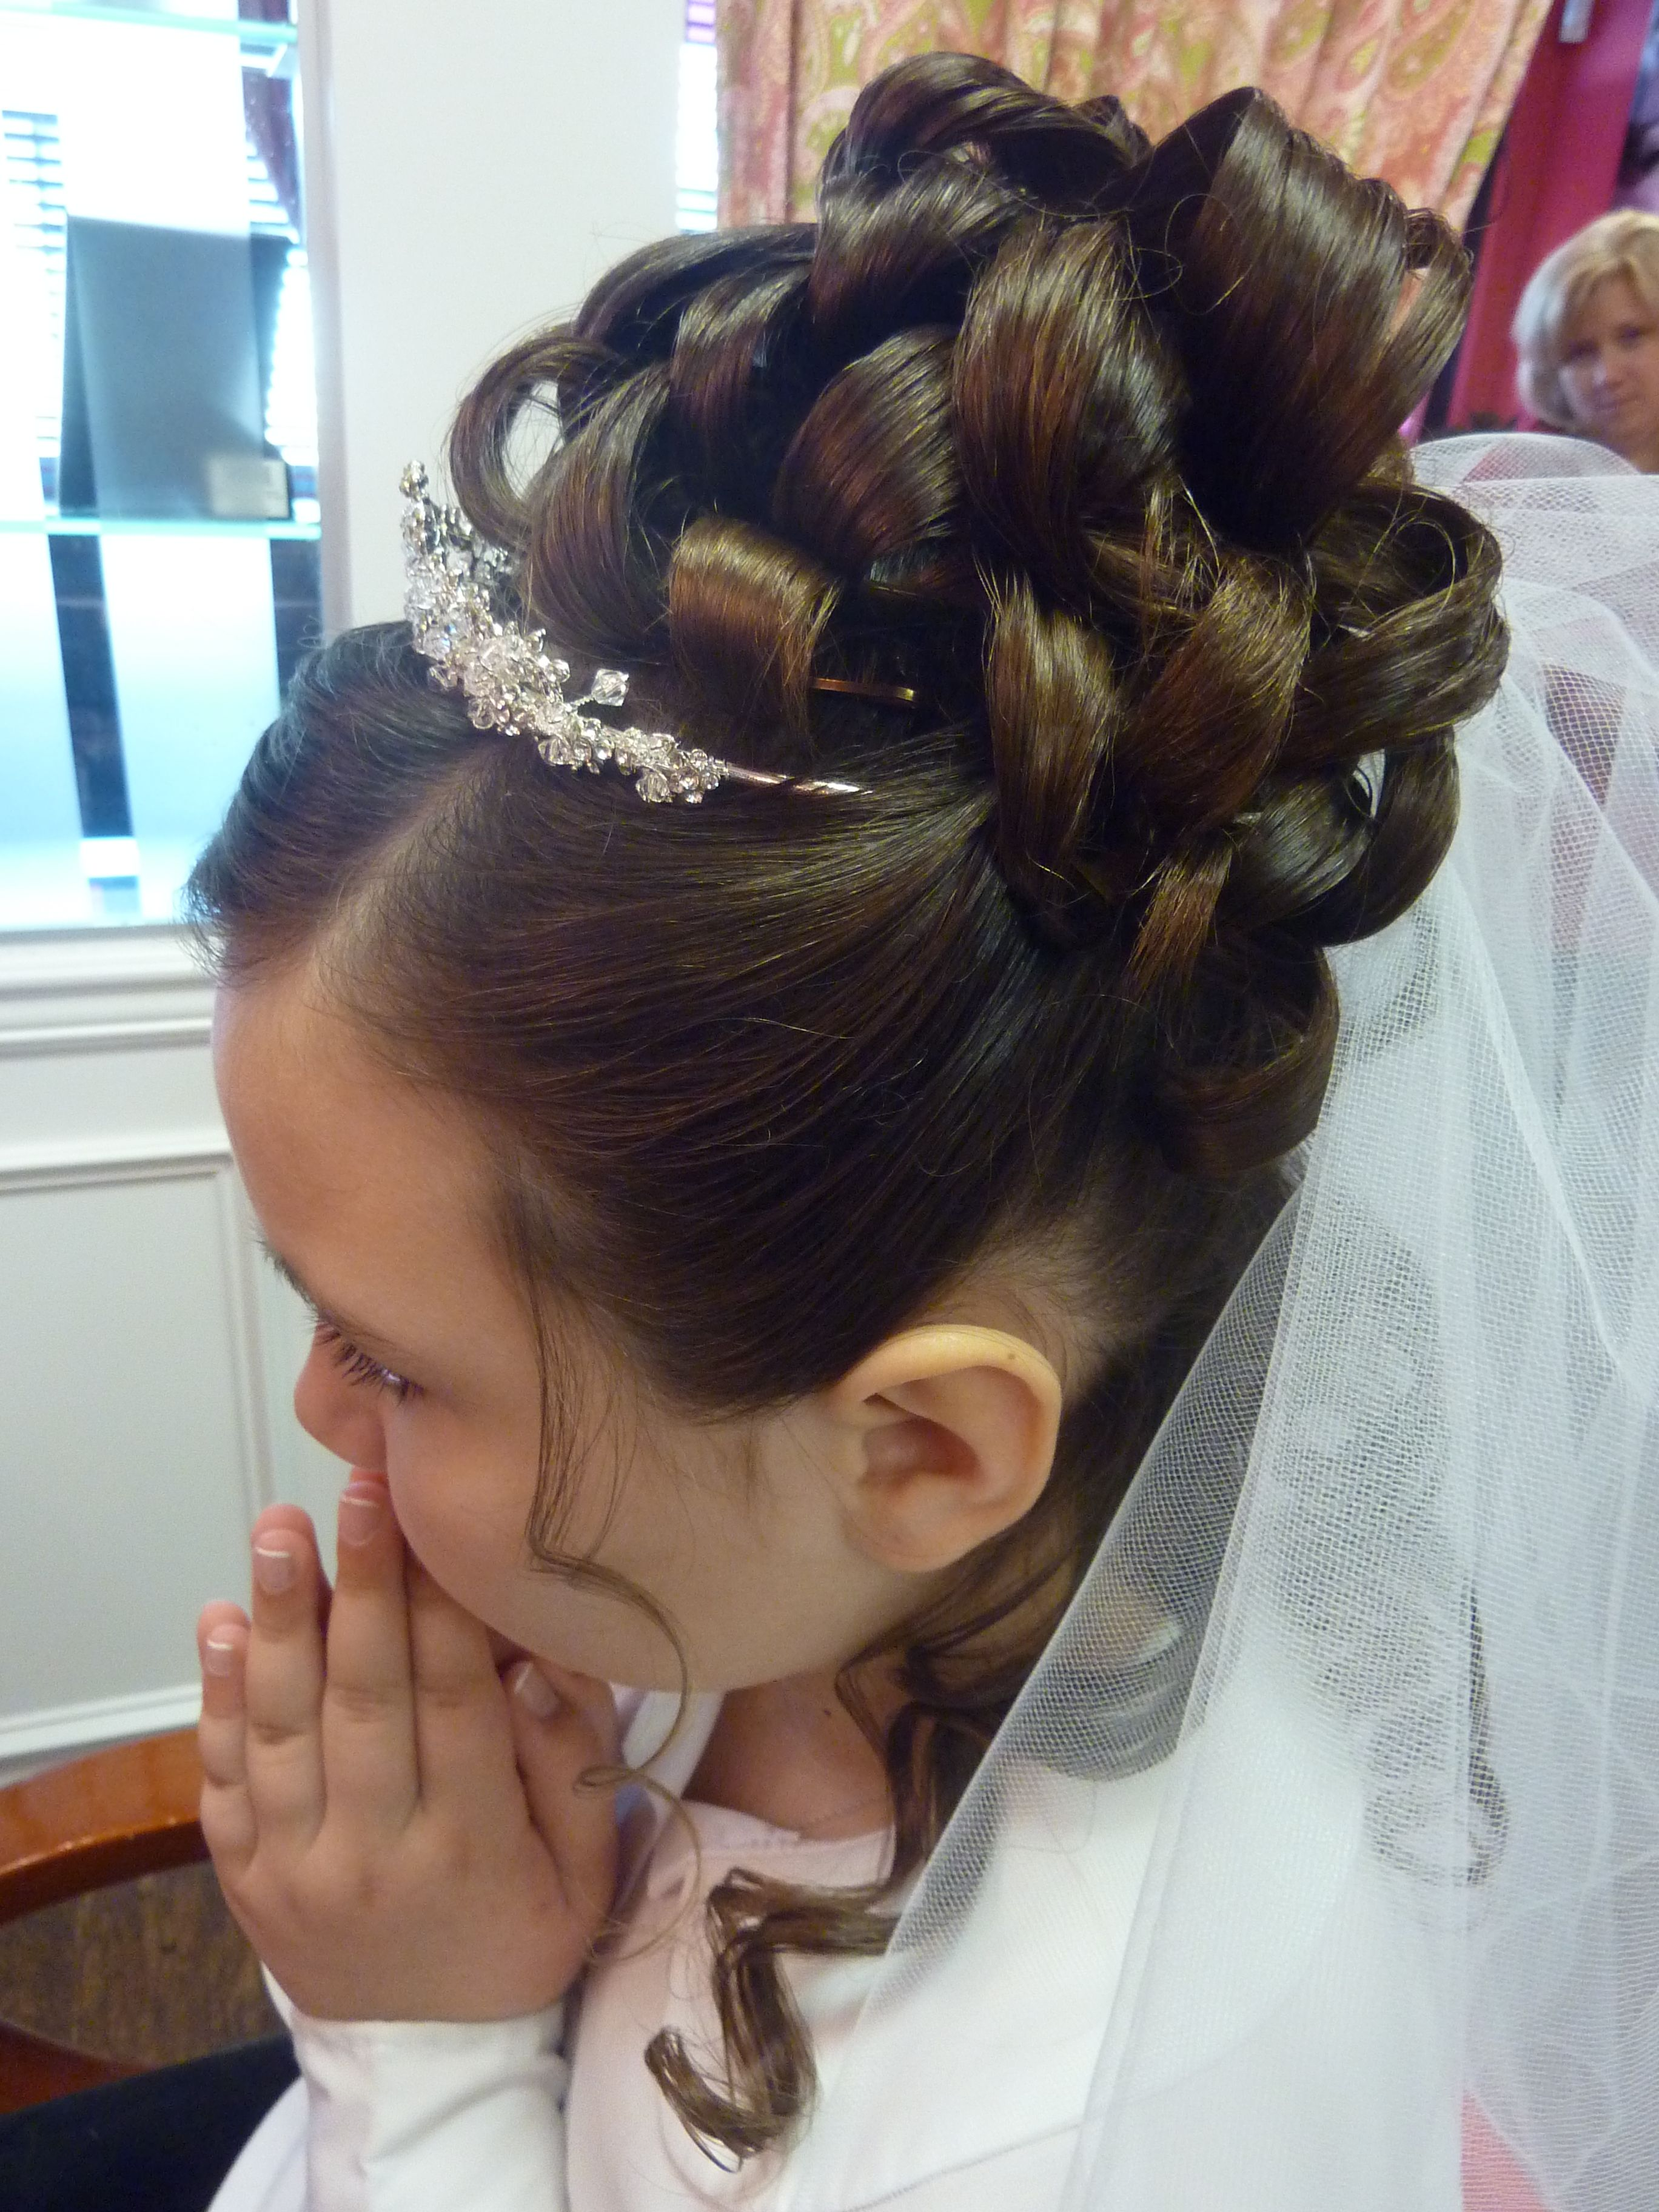 communion hair #updo #kidshairstyling # | hair styling in